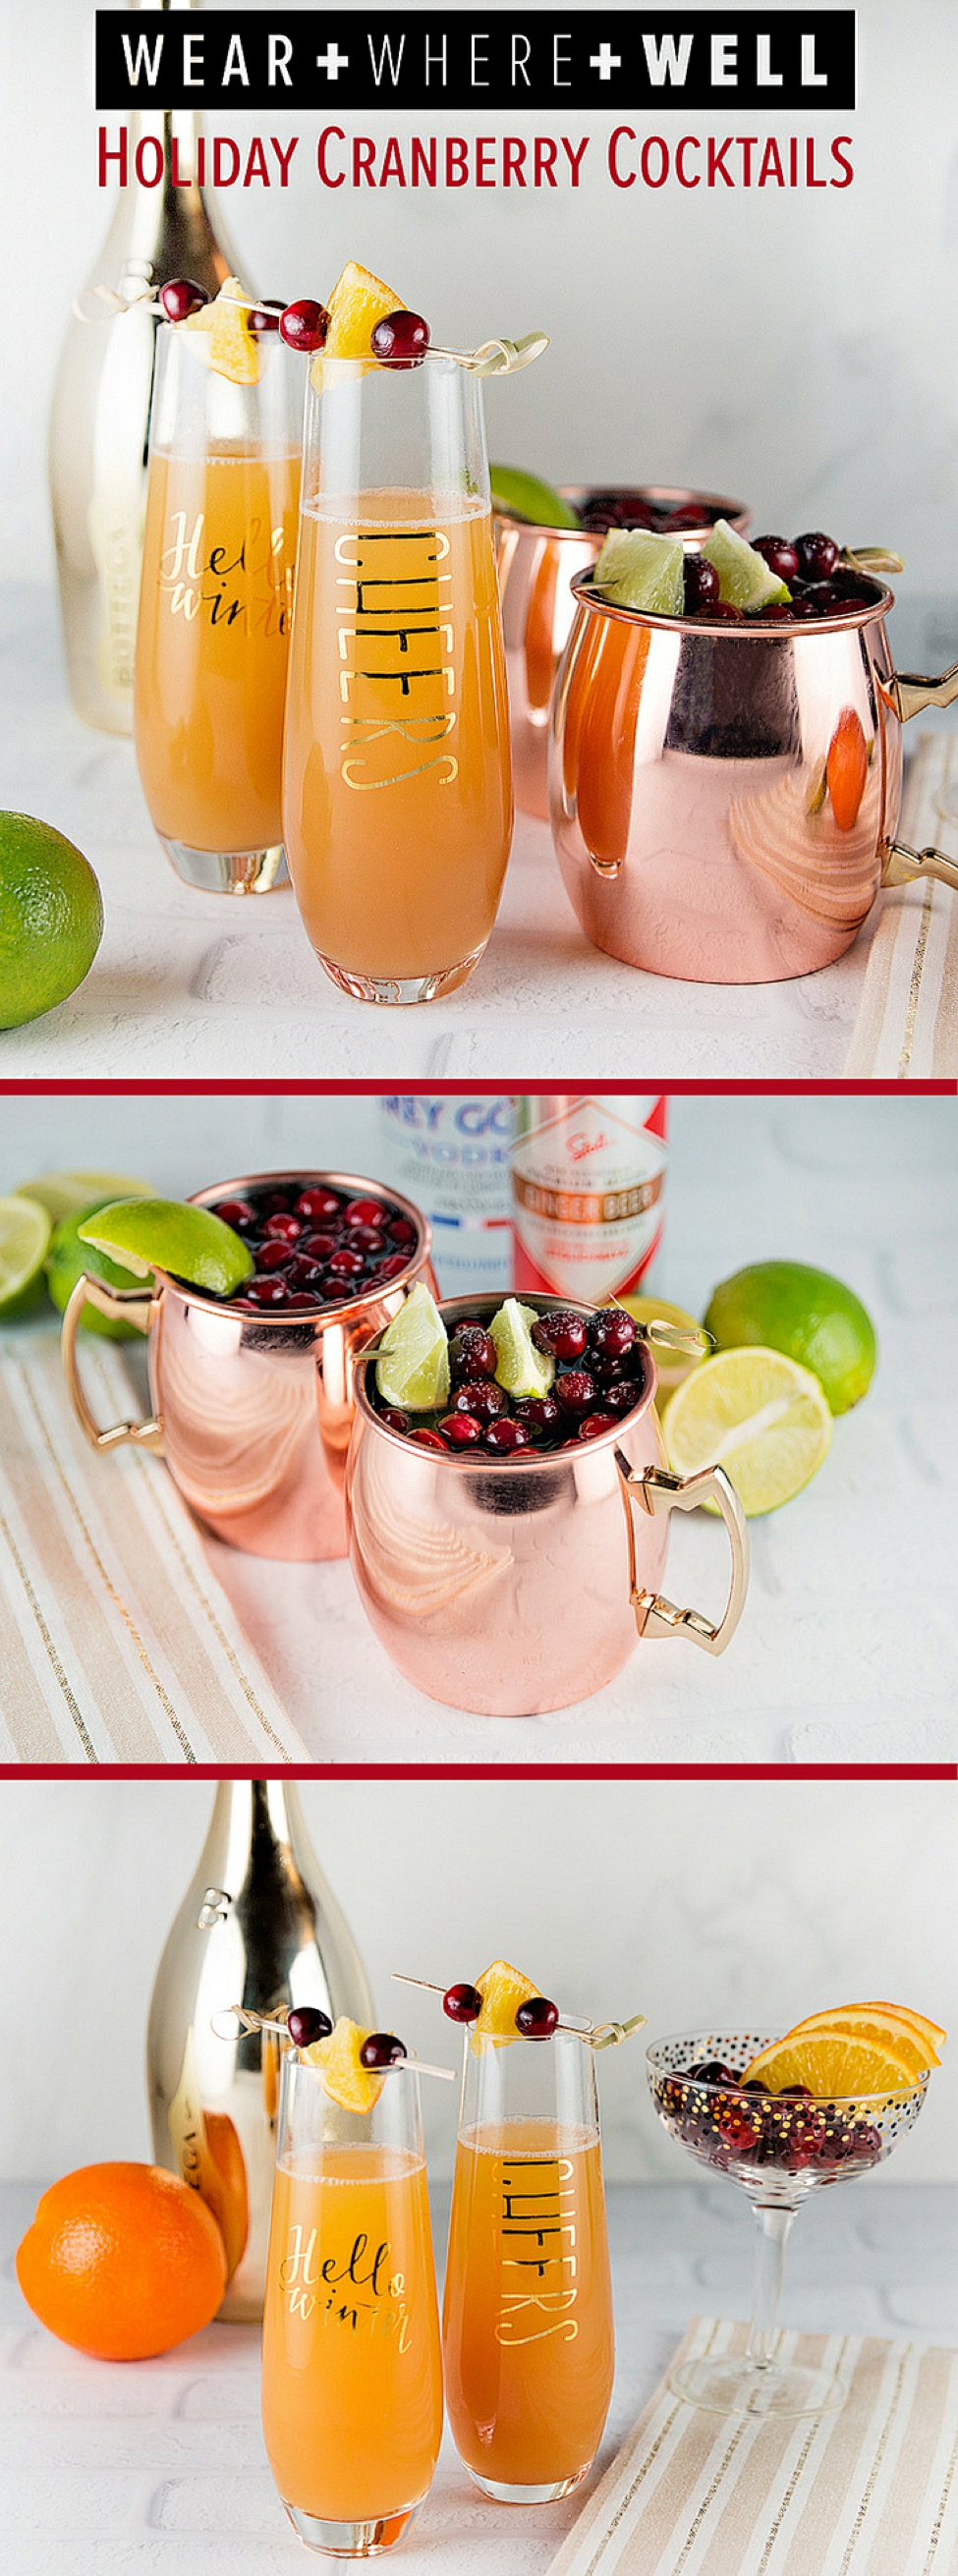 wear-where-well-holiday-cranberry-cocktails_0001